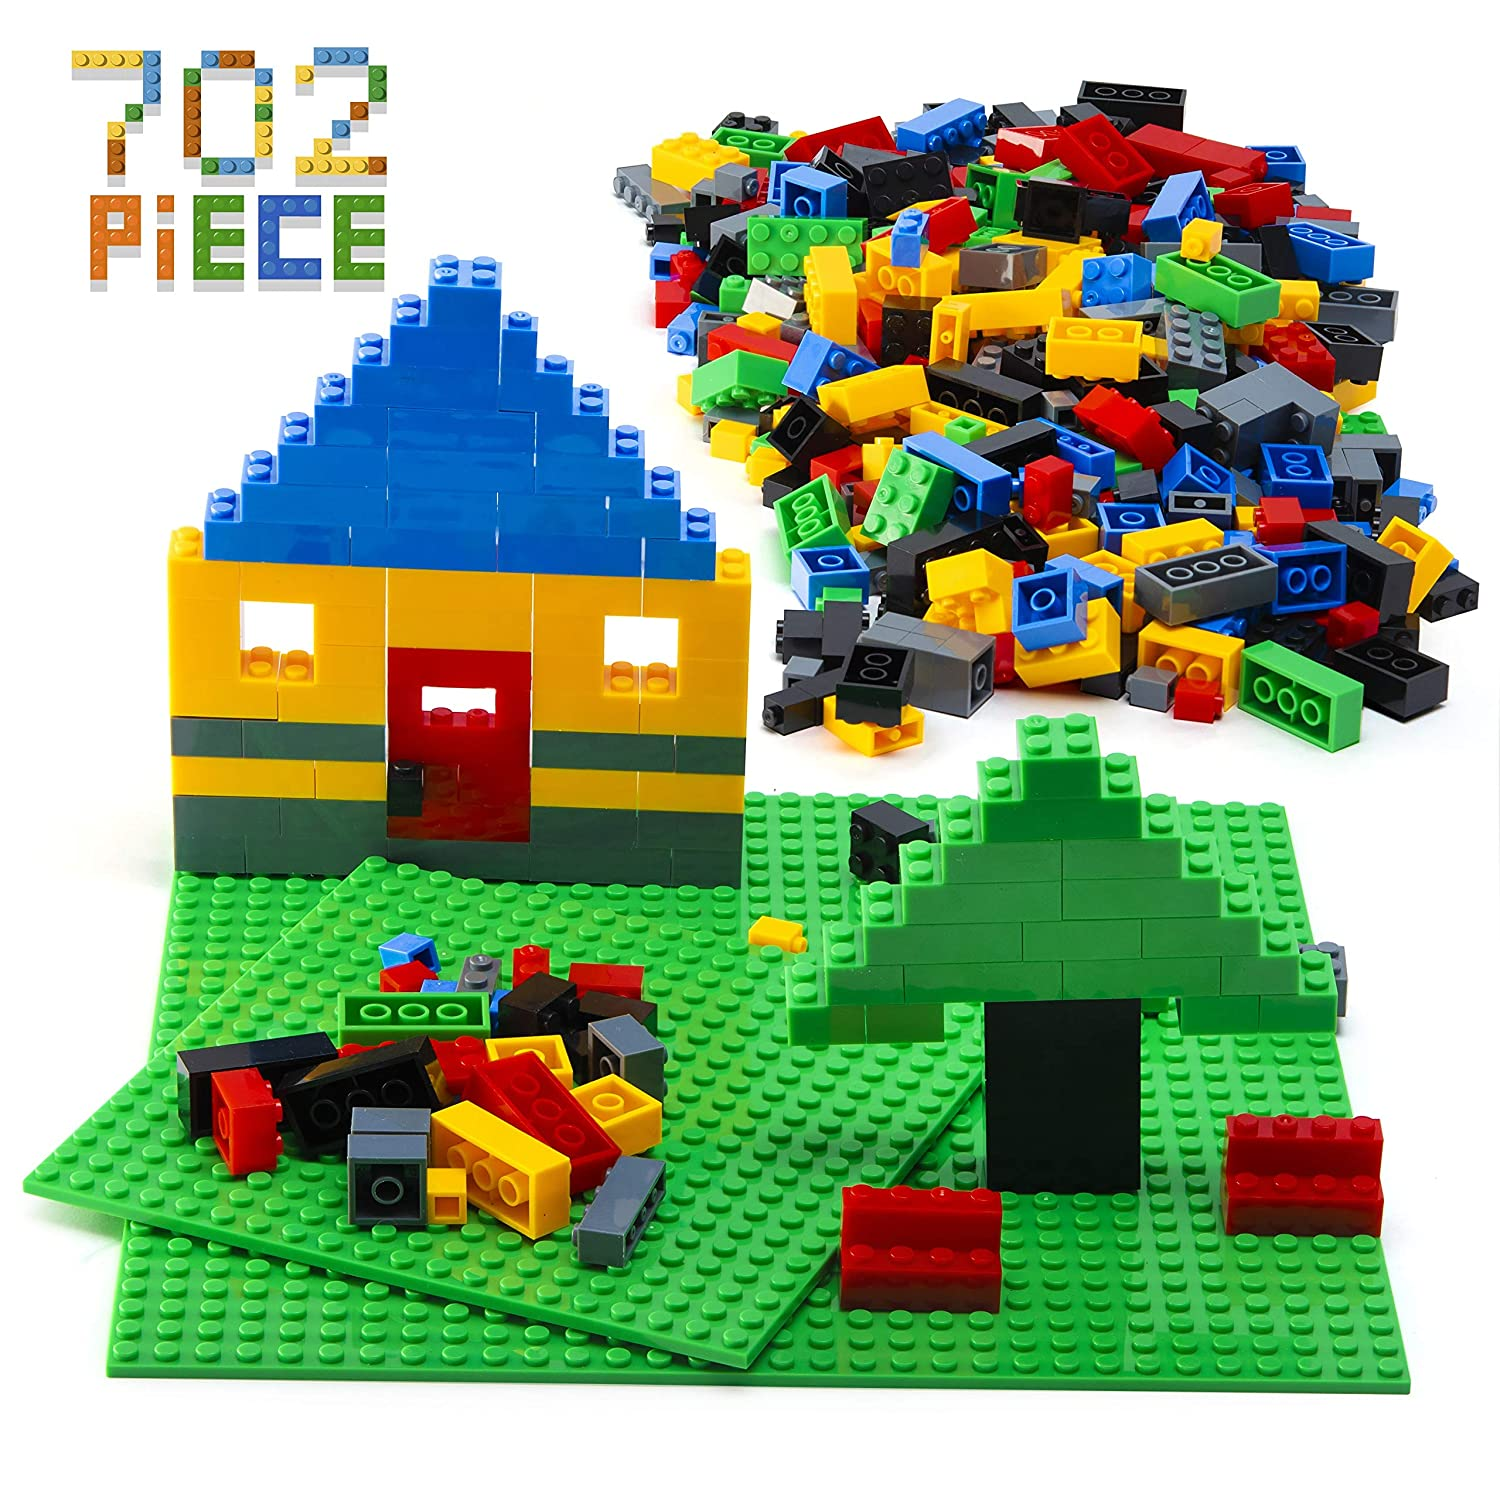 Prextex 700 Piece Building Bricks with 2 Boards Classic Colors Compatible with All Major Brands 700 Piece Small Building Blocks